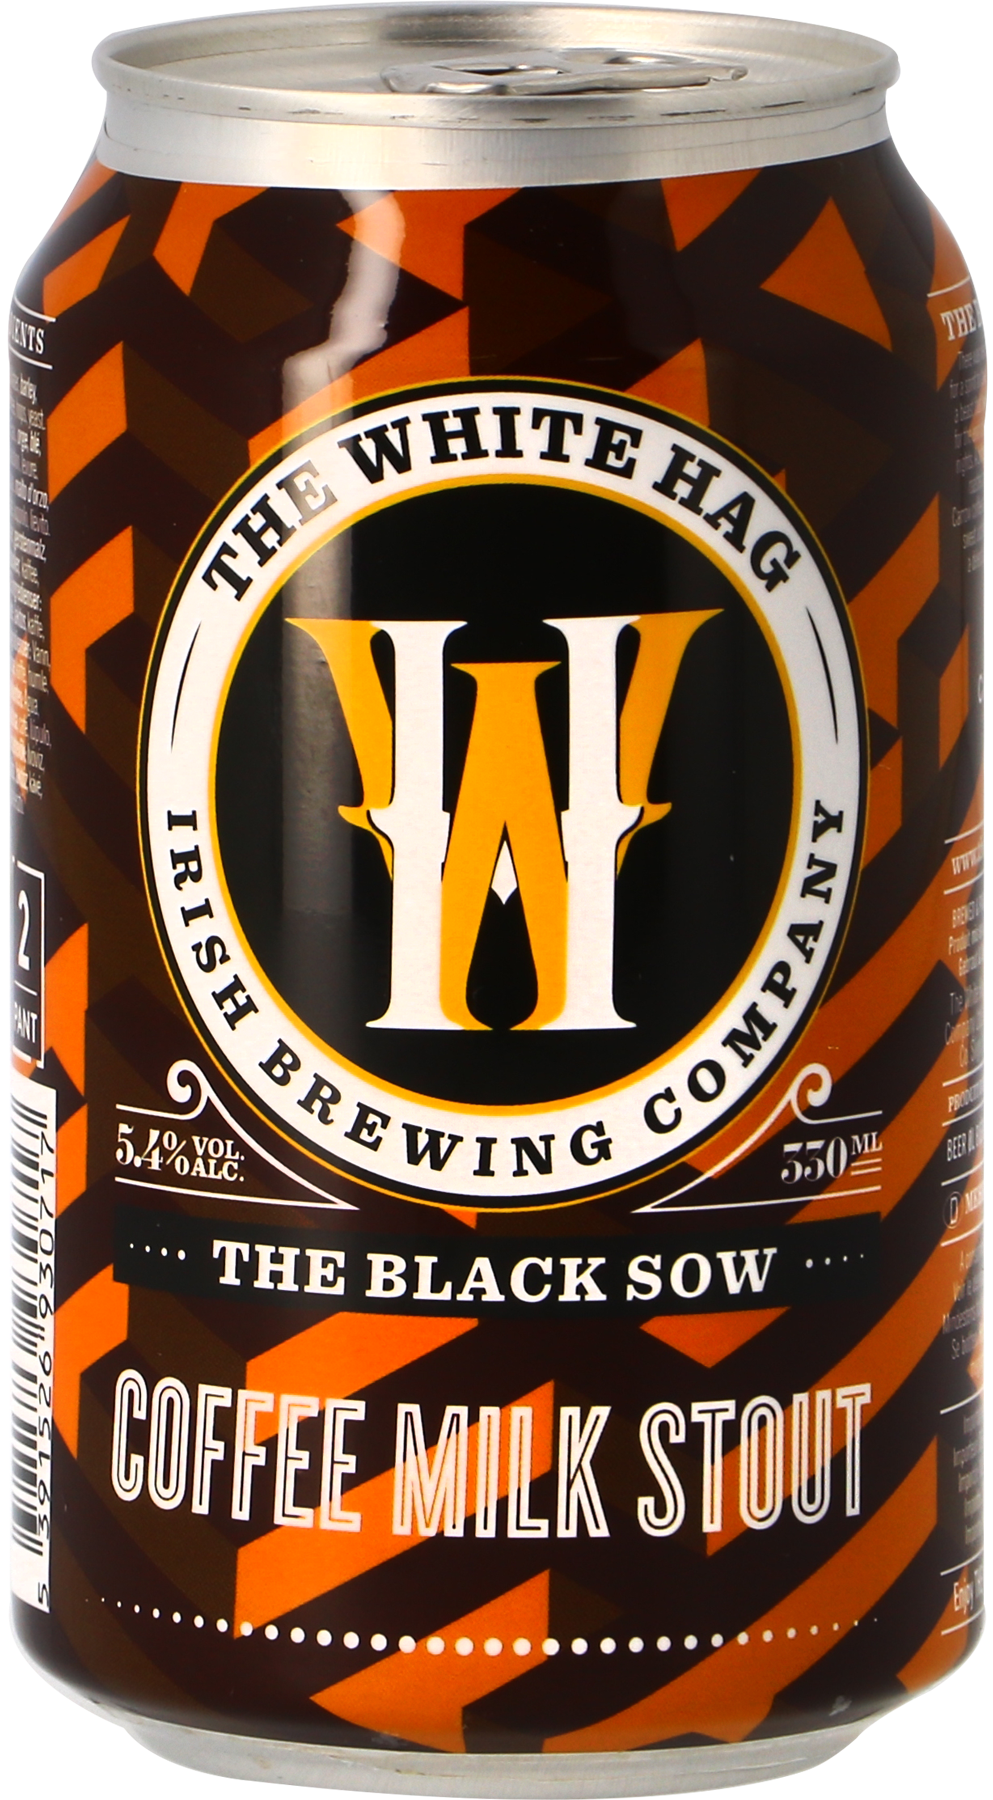 The White Hag Black Sow Nitro Stout - Lata